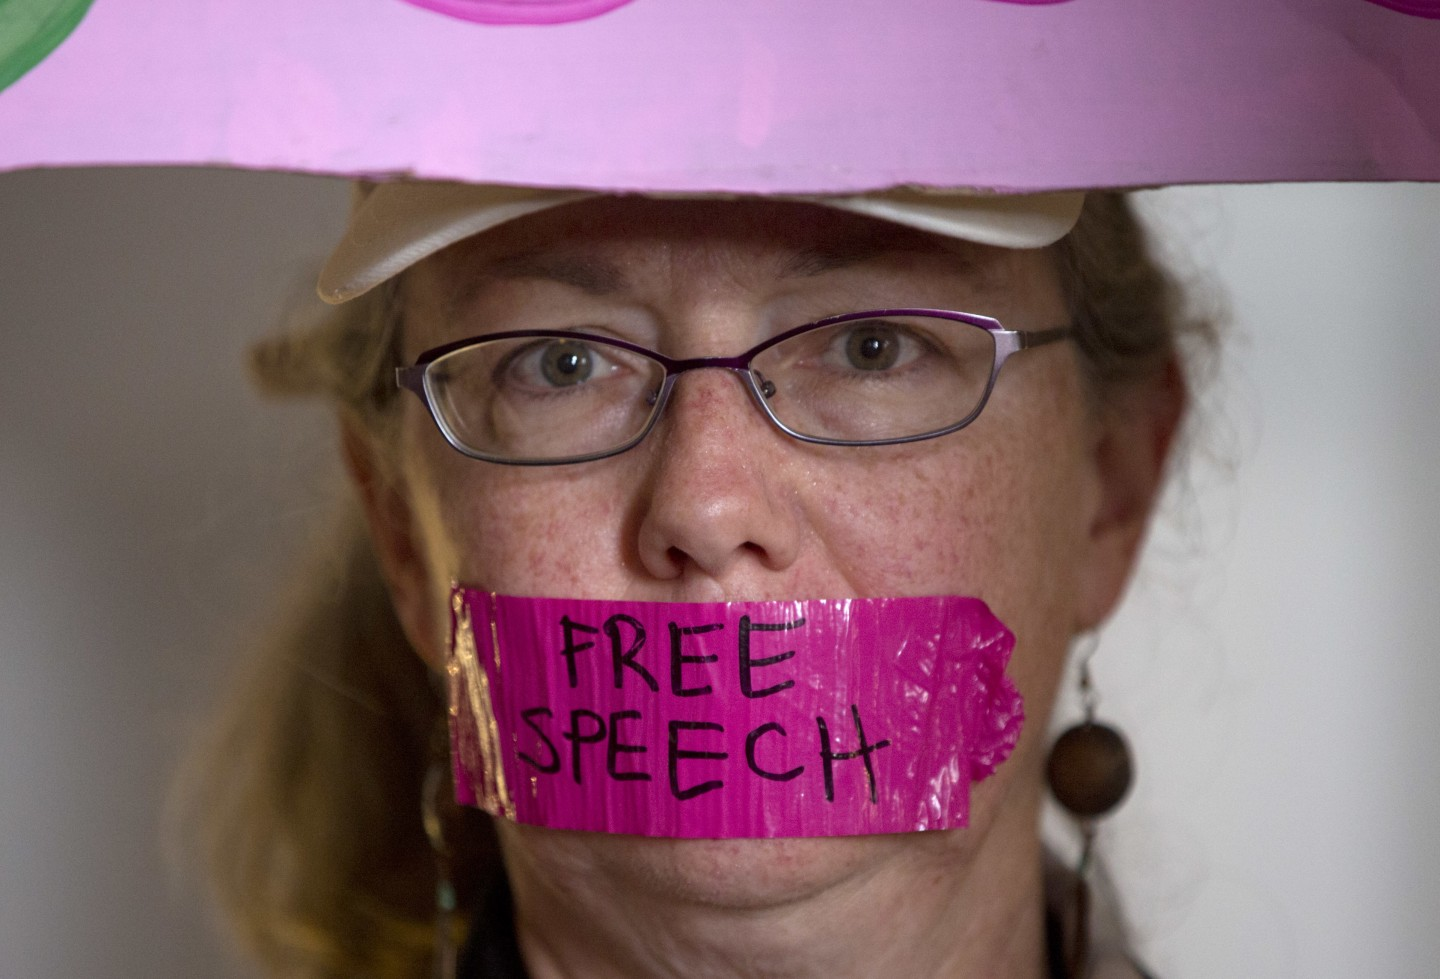 Real Clear Policy: Democrats Seek to Stifle Political Speech, SCOTUS Be Damned